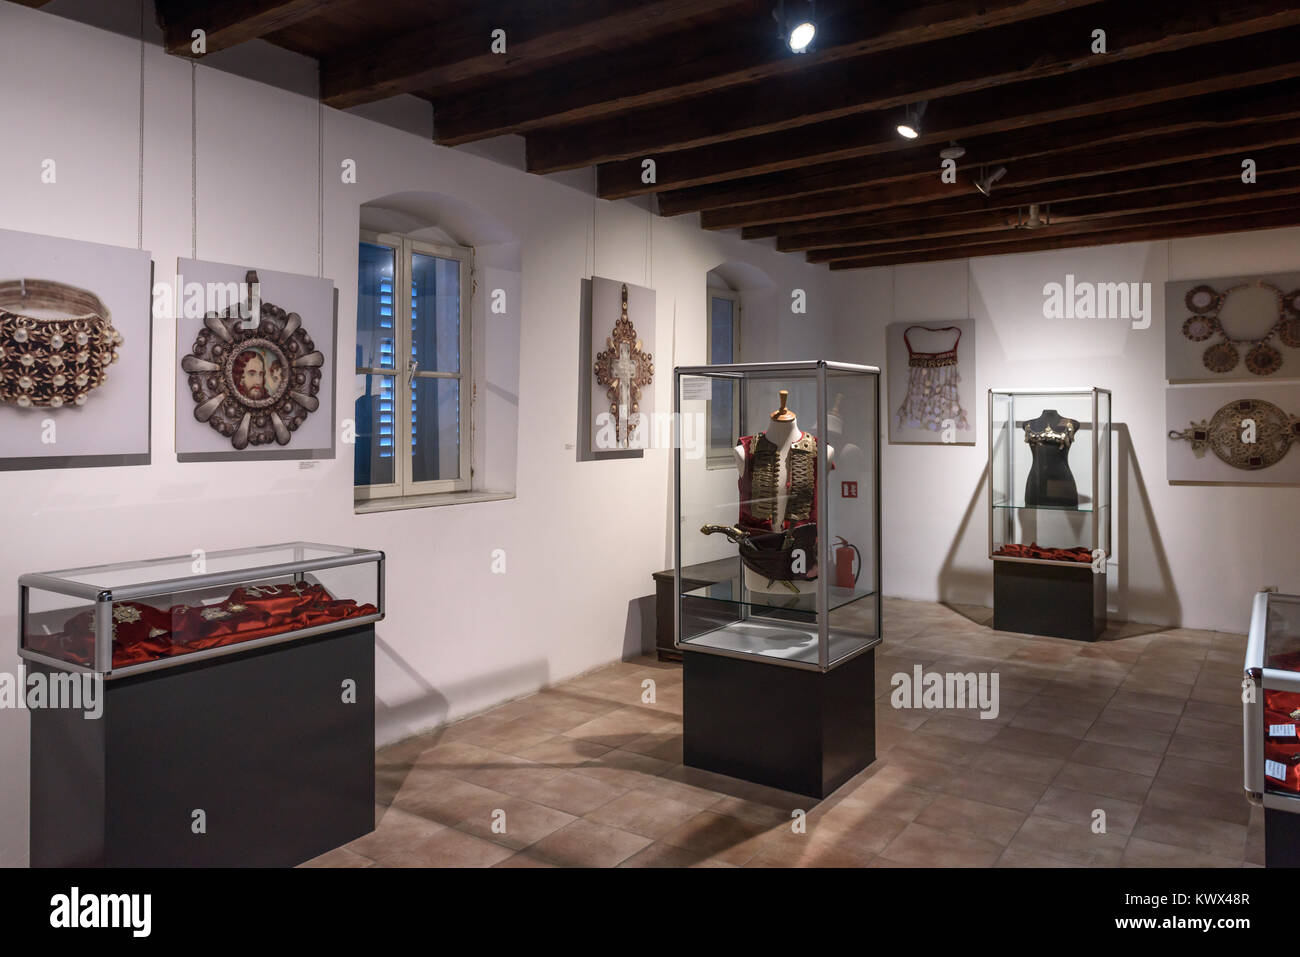 Armour & Jewellery displays, Ethnographic Museum, Split, Croatia - Stock Image